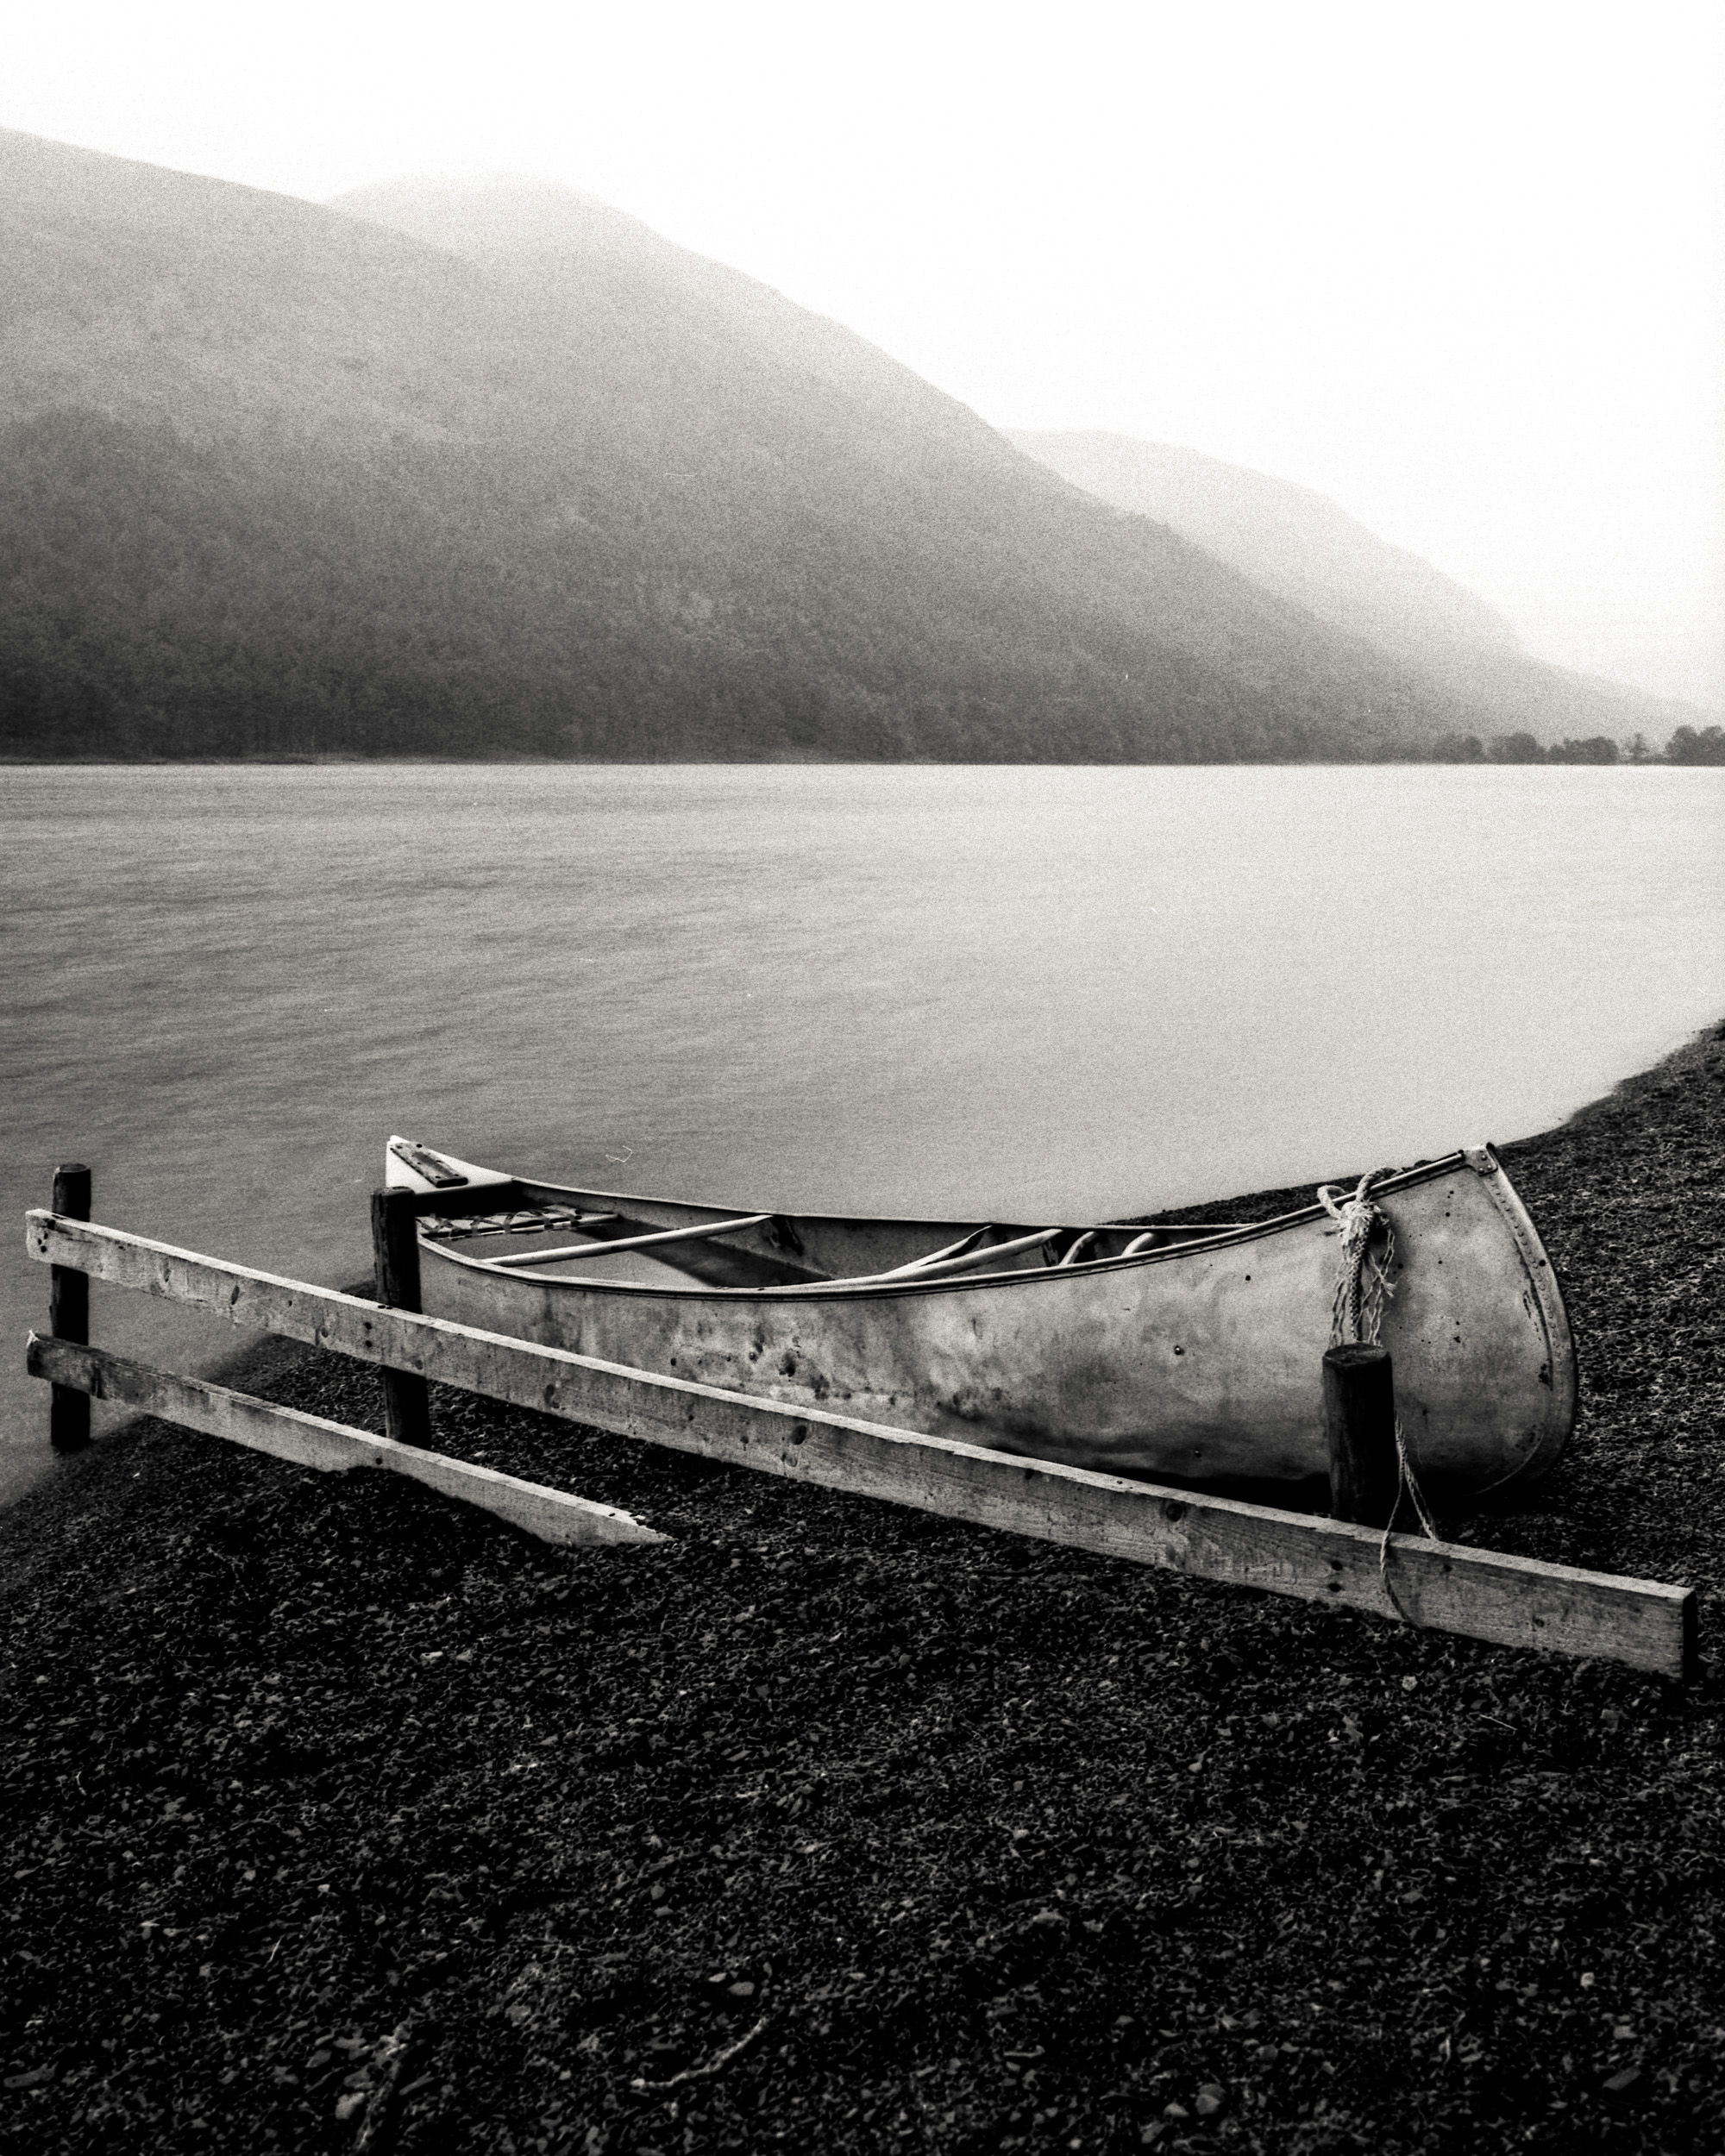 Mamiya 645 Pro TL, 45mm, Delta 100.     Finding a silver boat with a wooden fence next to it on a dark rock beach is just a tone perfect subject for black and white. The boat set against the mountain with a combination of rain and sun in the background for me creates a quite dynamic image with a very static subject.